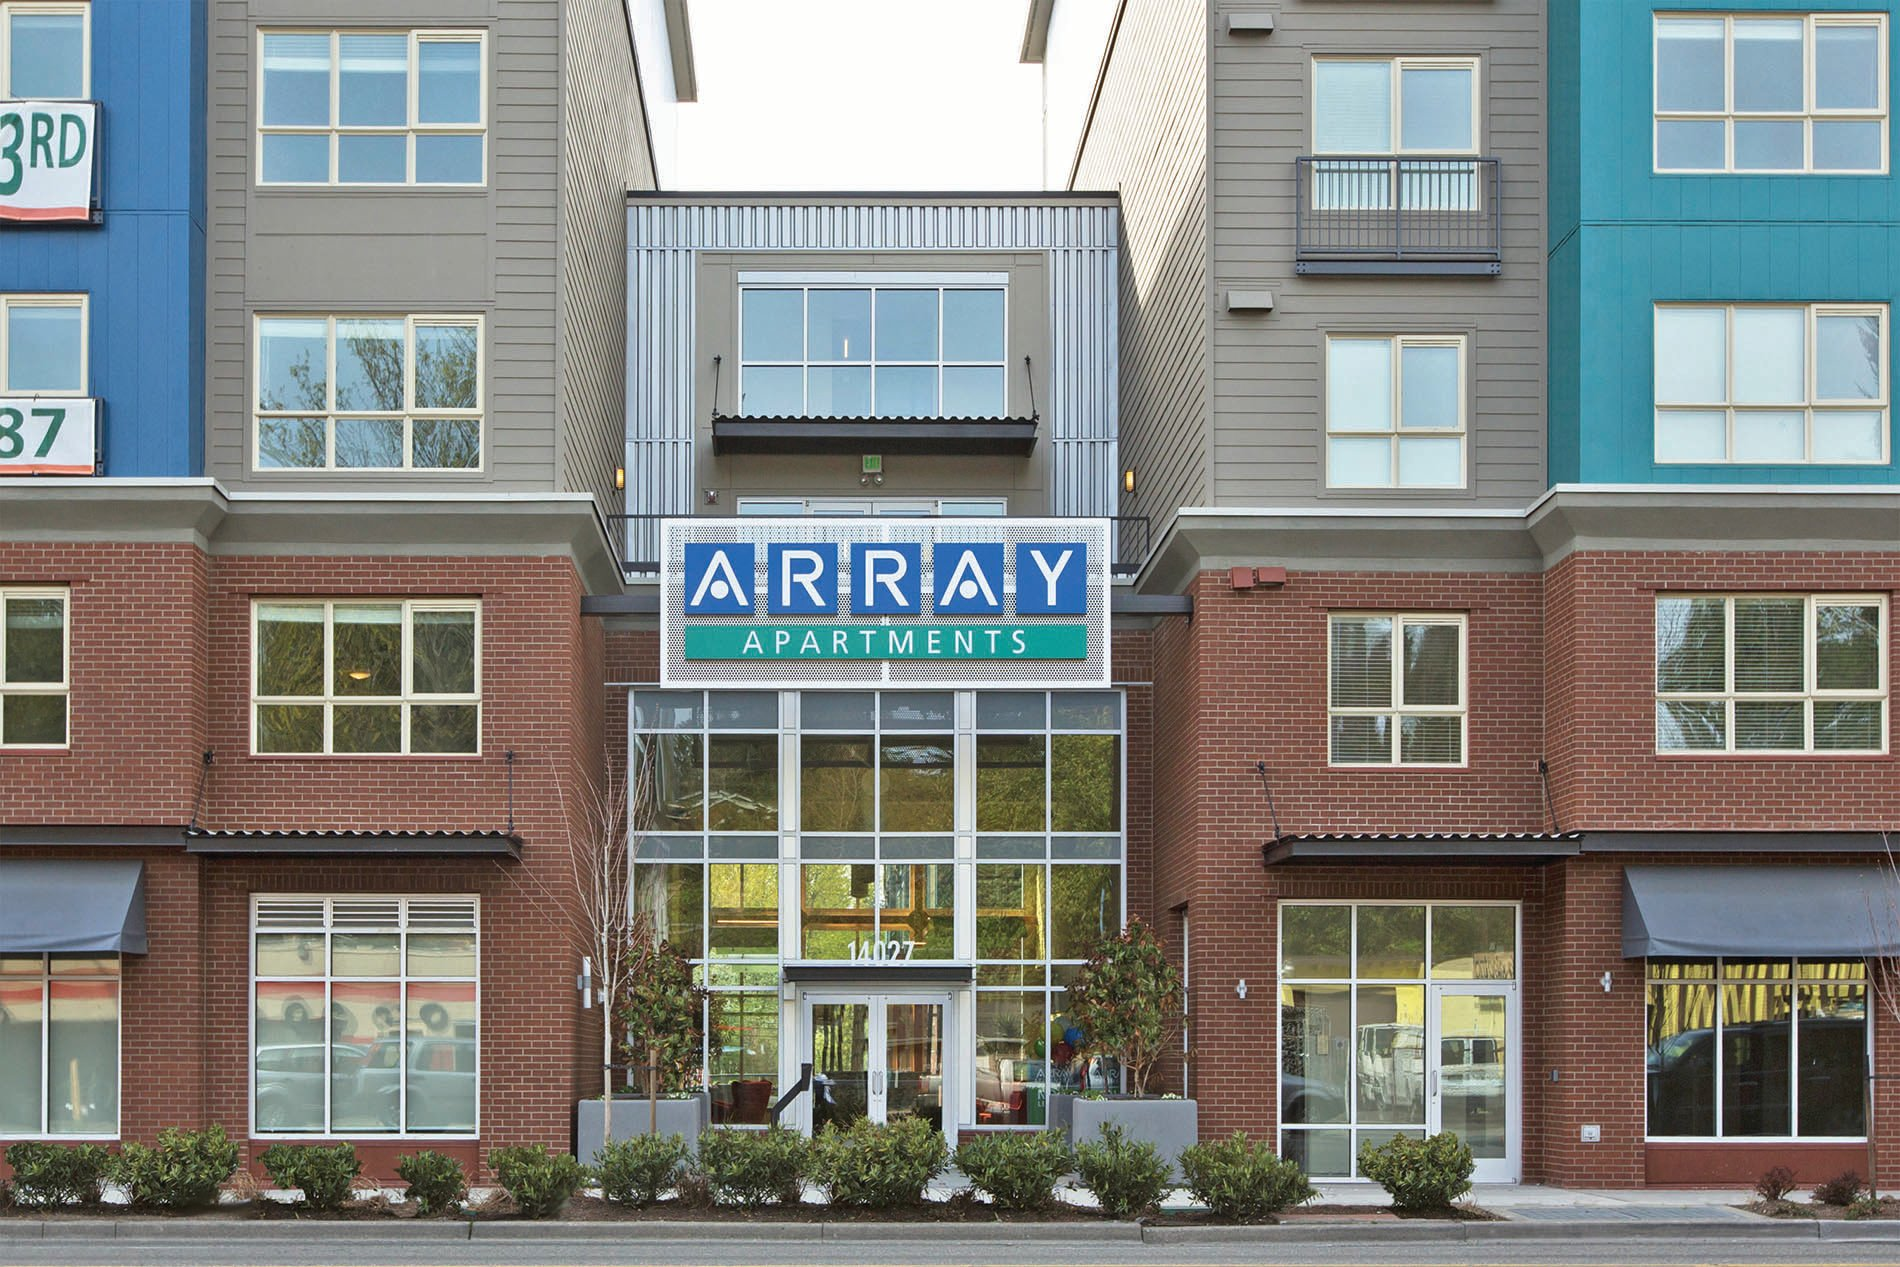 Array Apartments